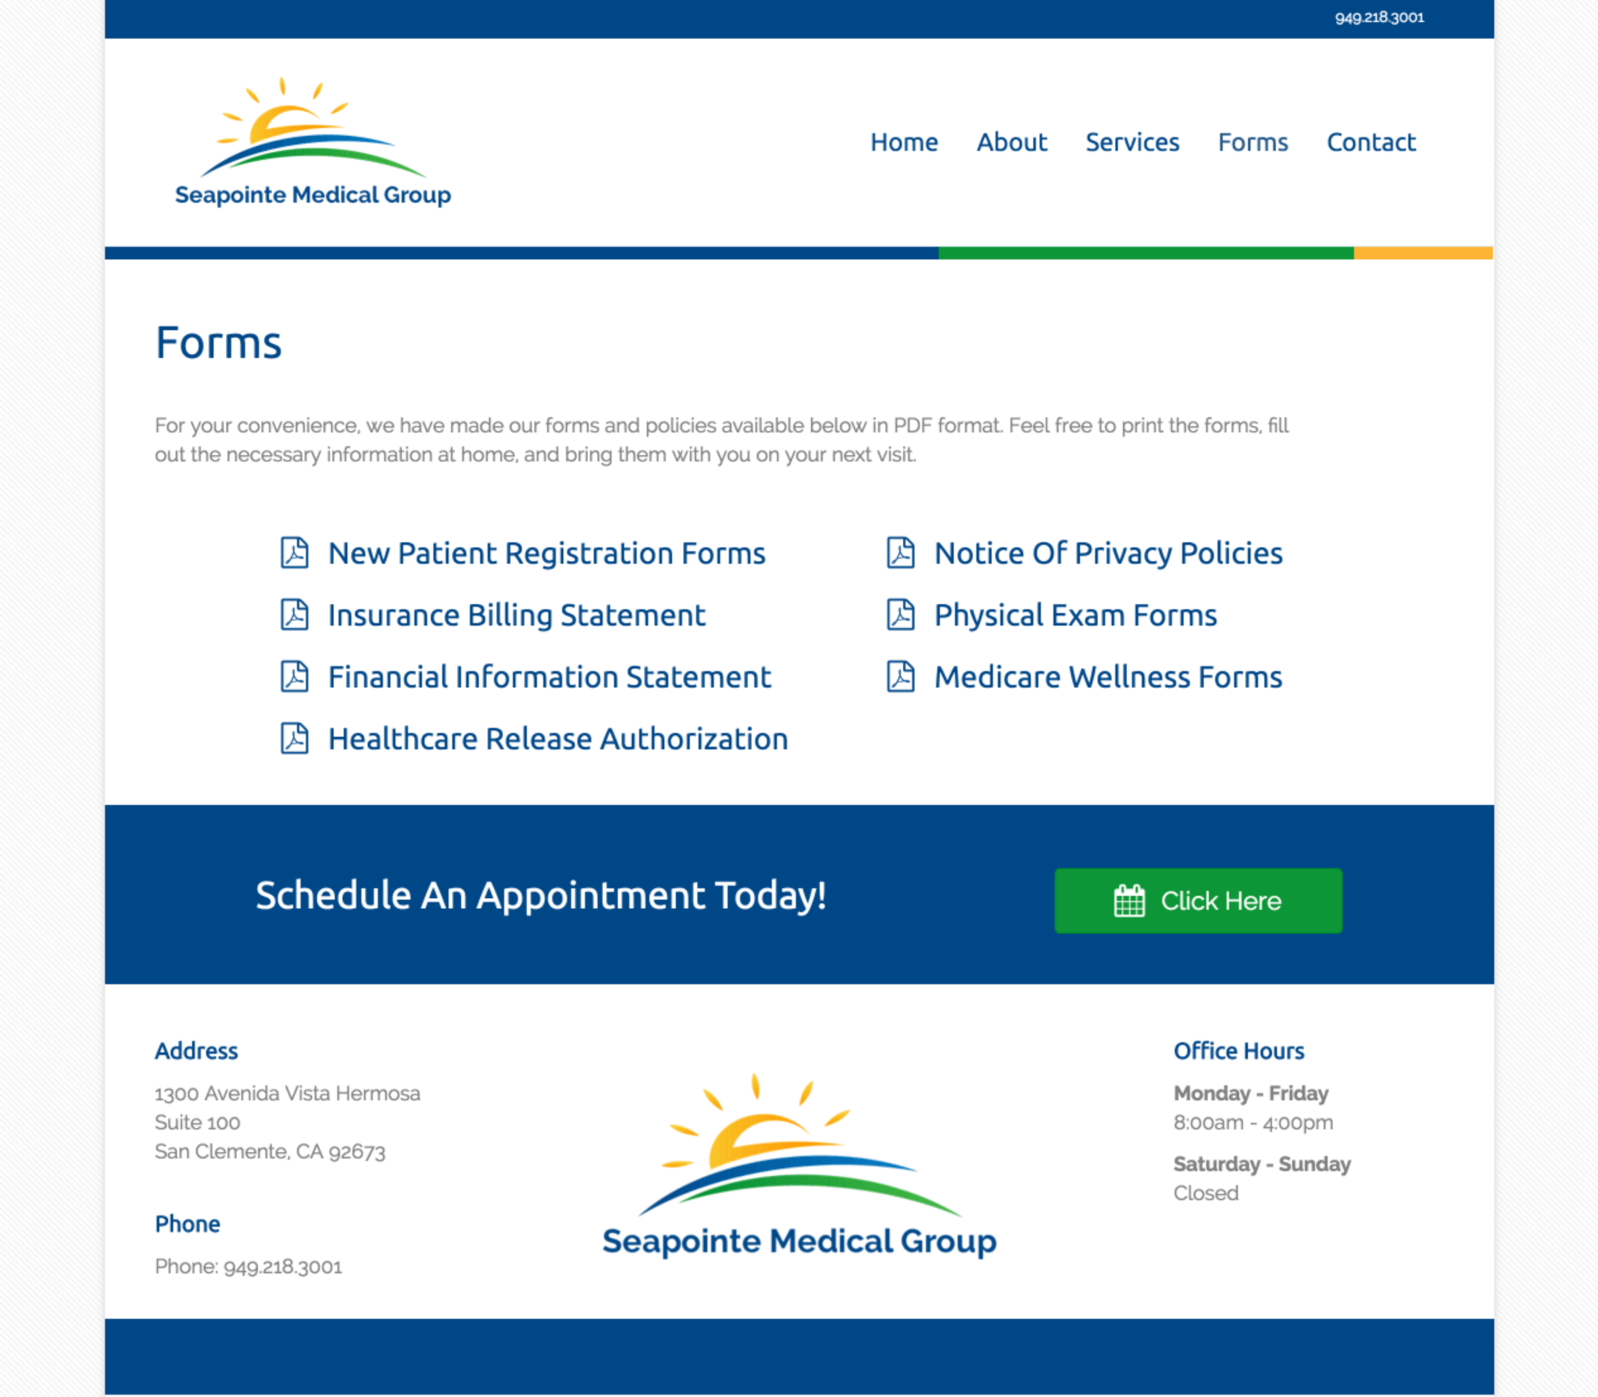 Seapoinite-Medical-Group-Doctors-Office-Website-Design-Forms-Page